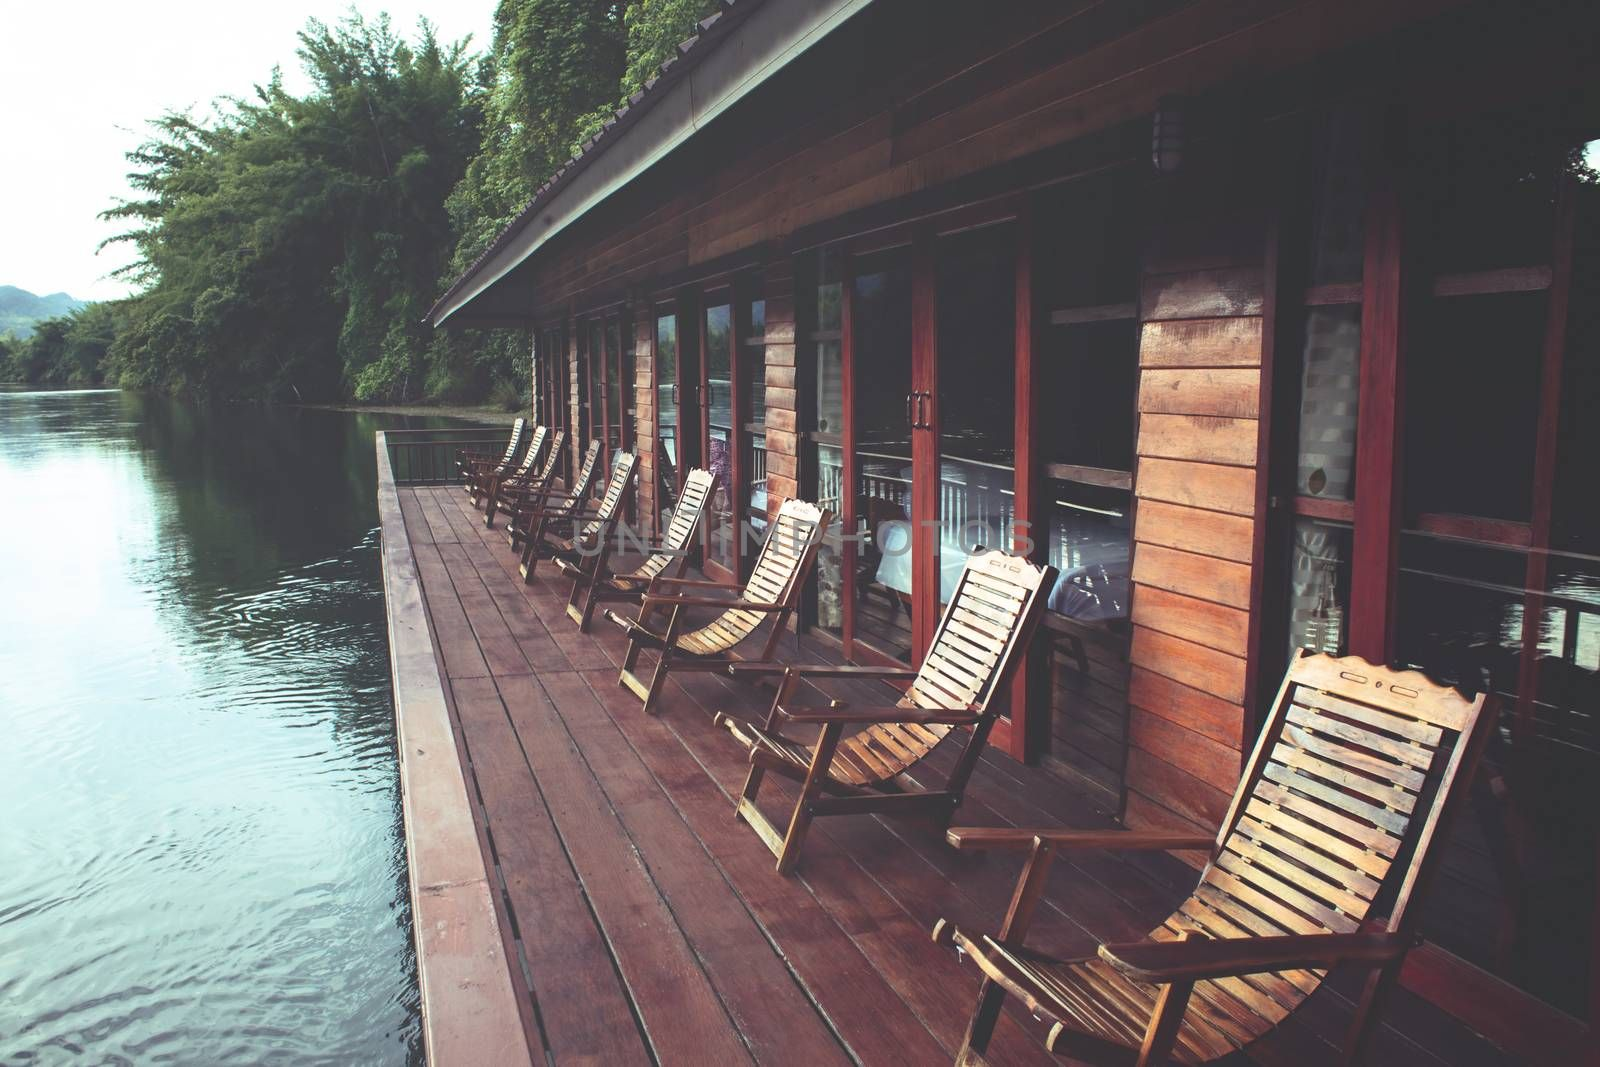 Wooden chairs in floating hotel on the River Kwai in Thailand